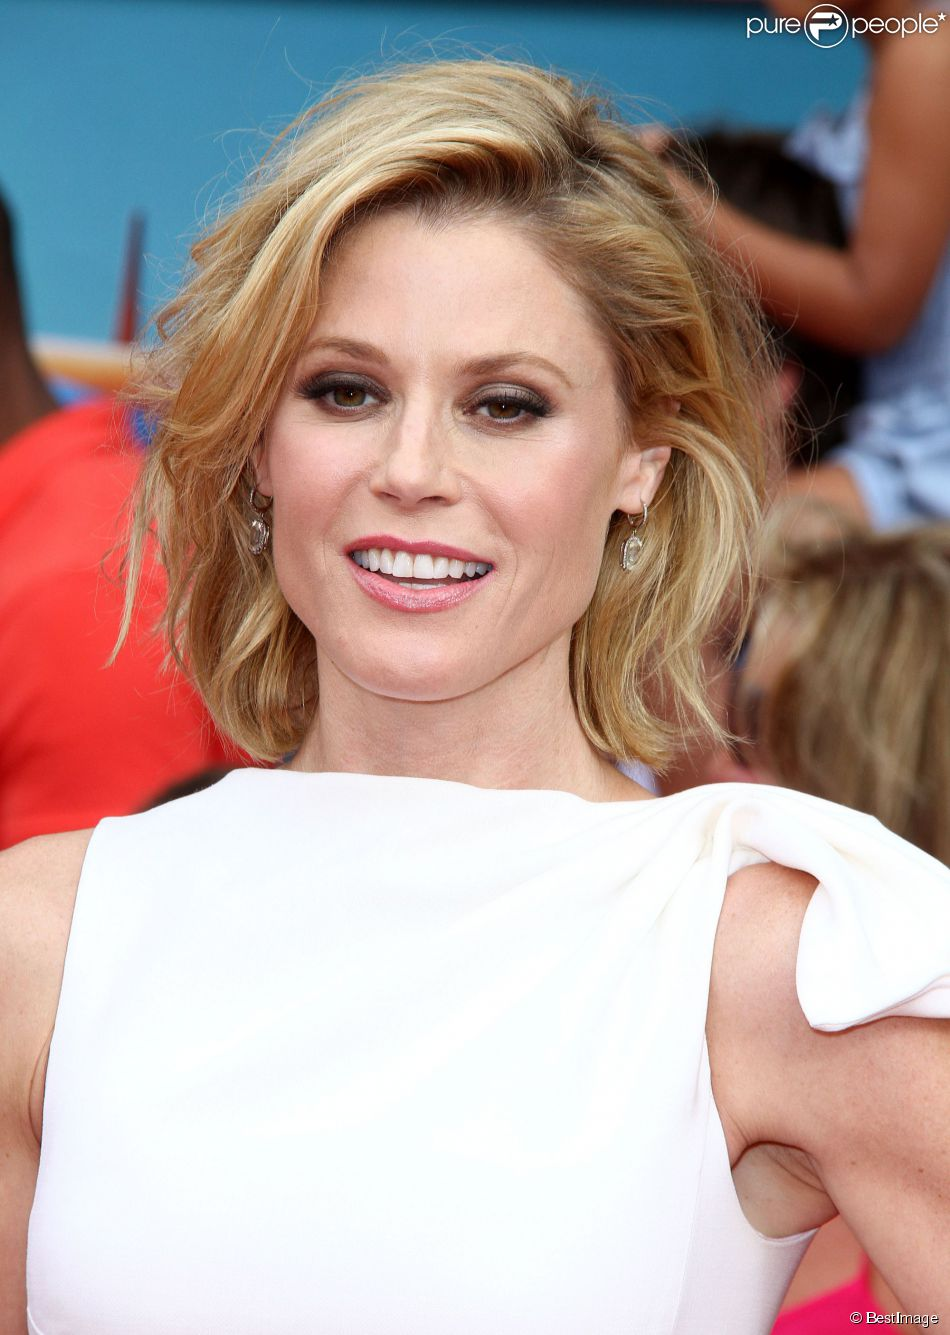 bowen divorced singles Julie bowen can now move on with her new life as a single woman the modern family star finalized her divorce with ex-husband scott phillips after the two sides agreed to split their assets.